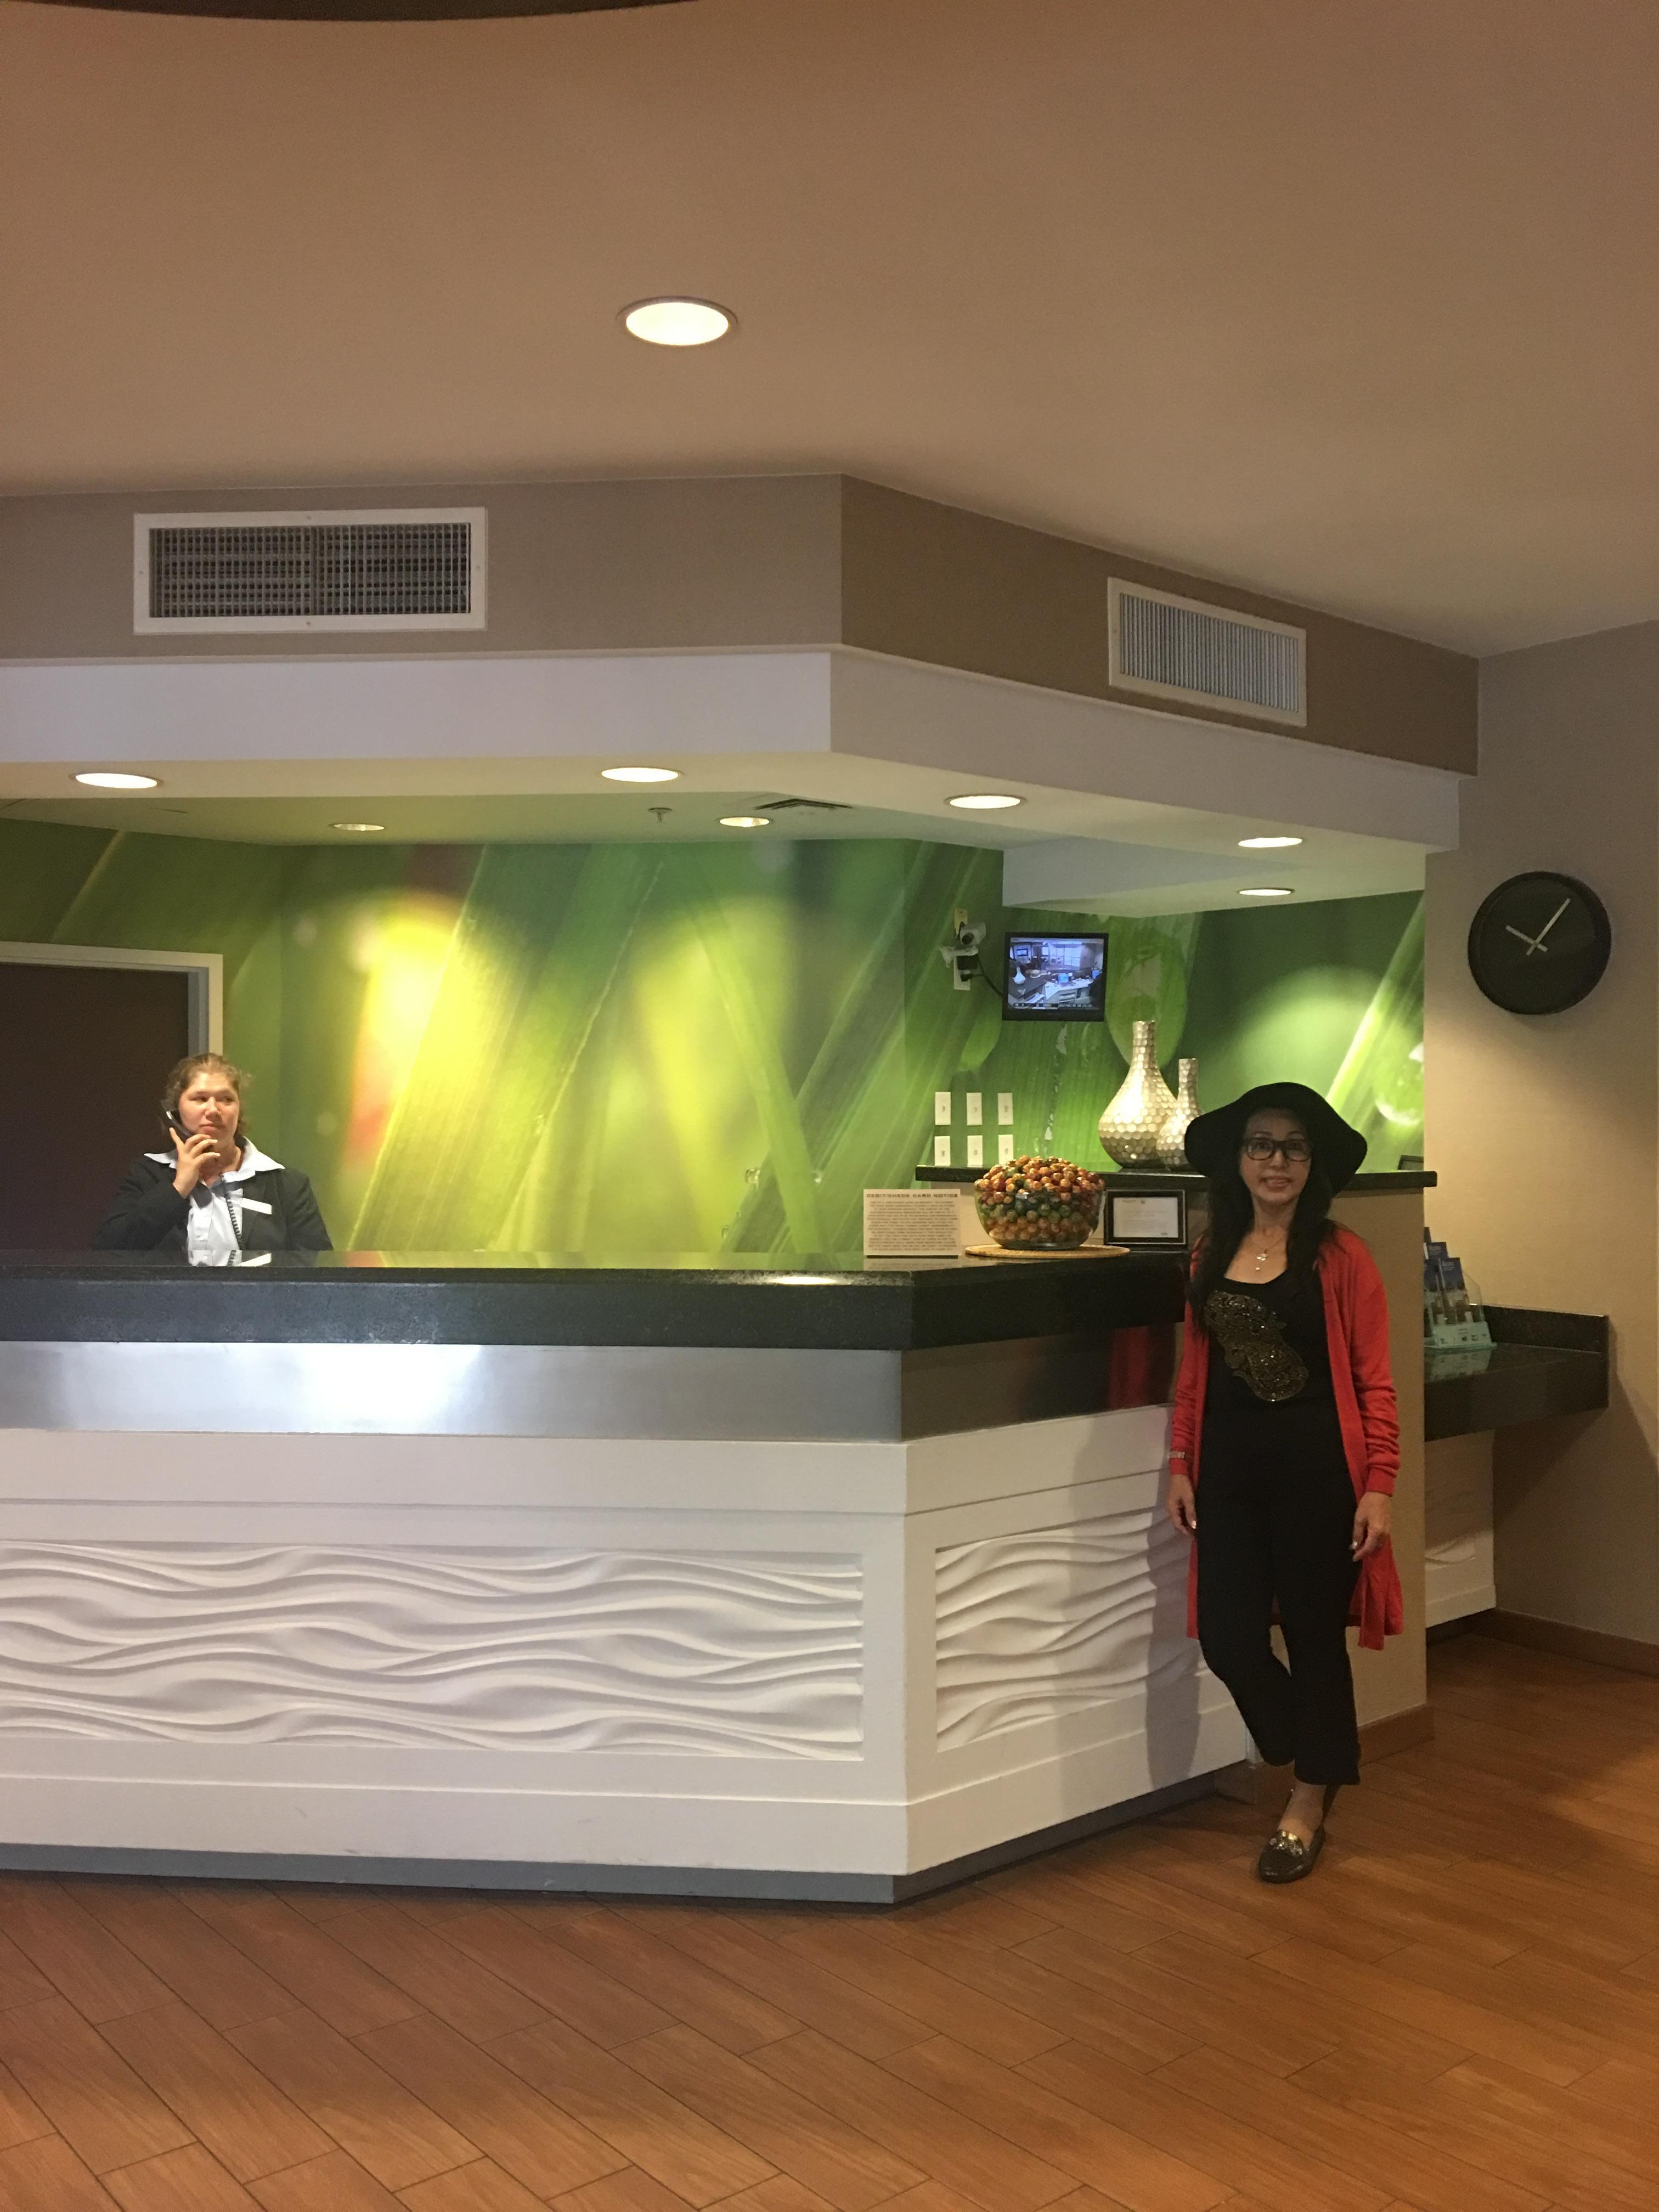 Reception counter of the hotel..